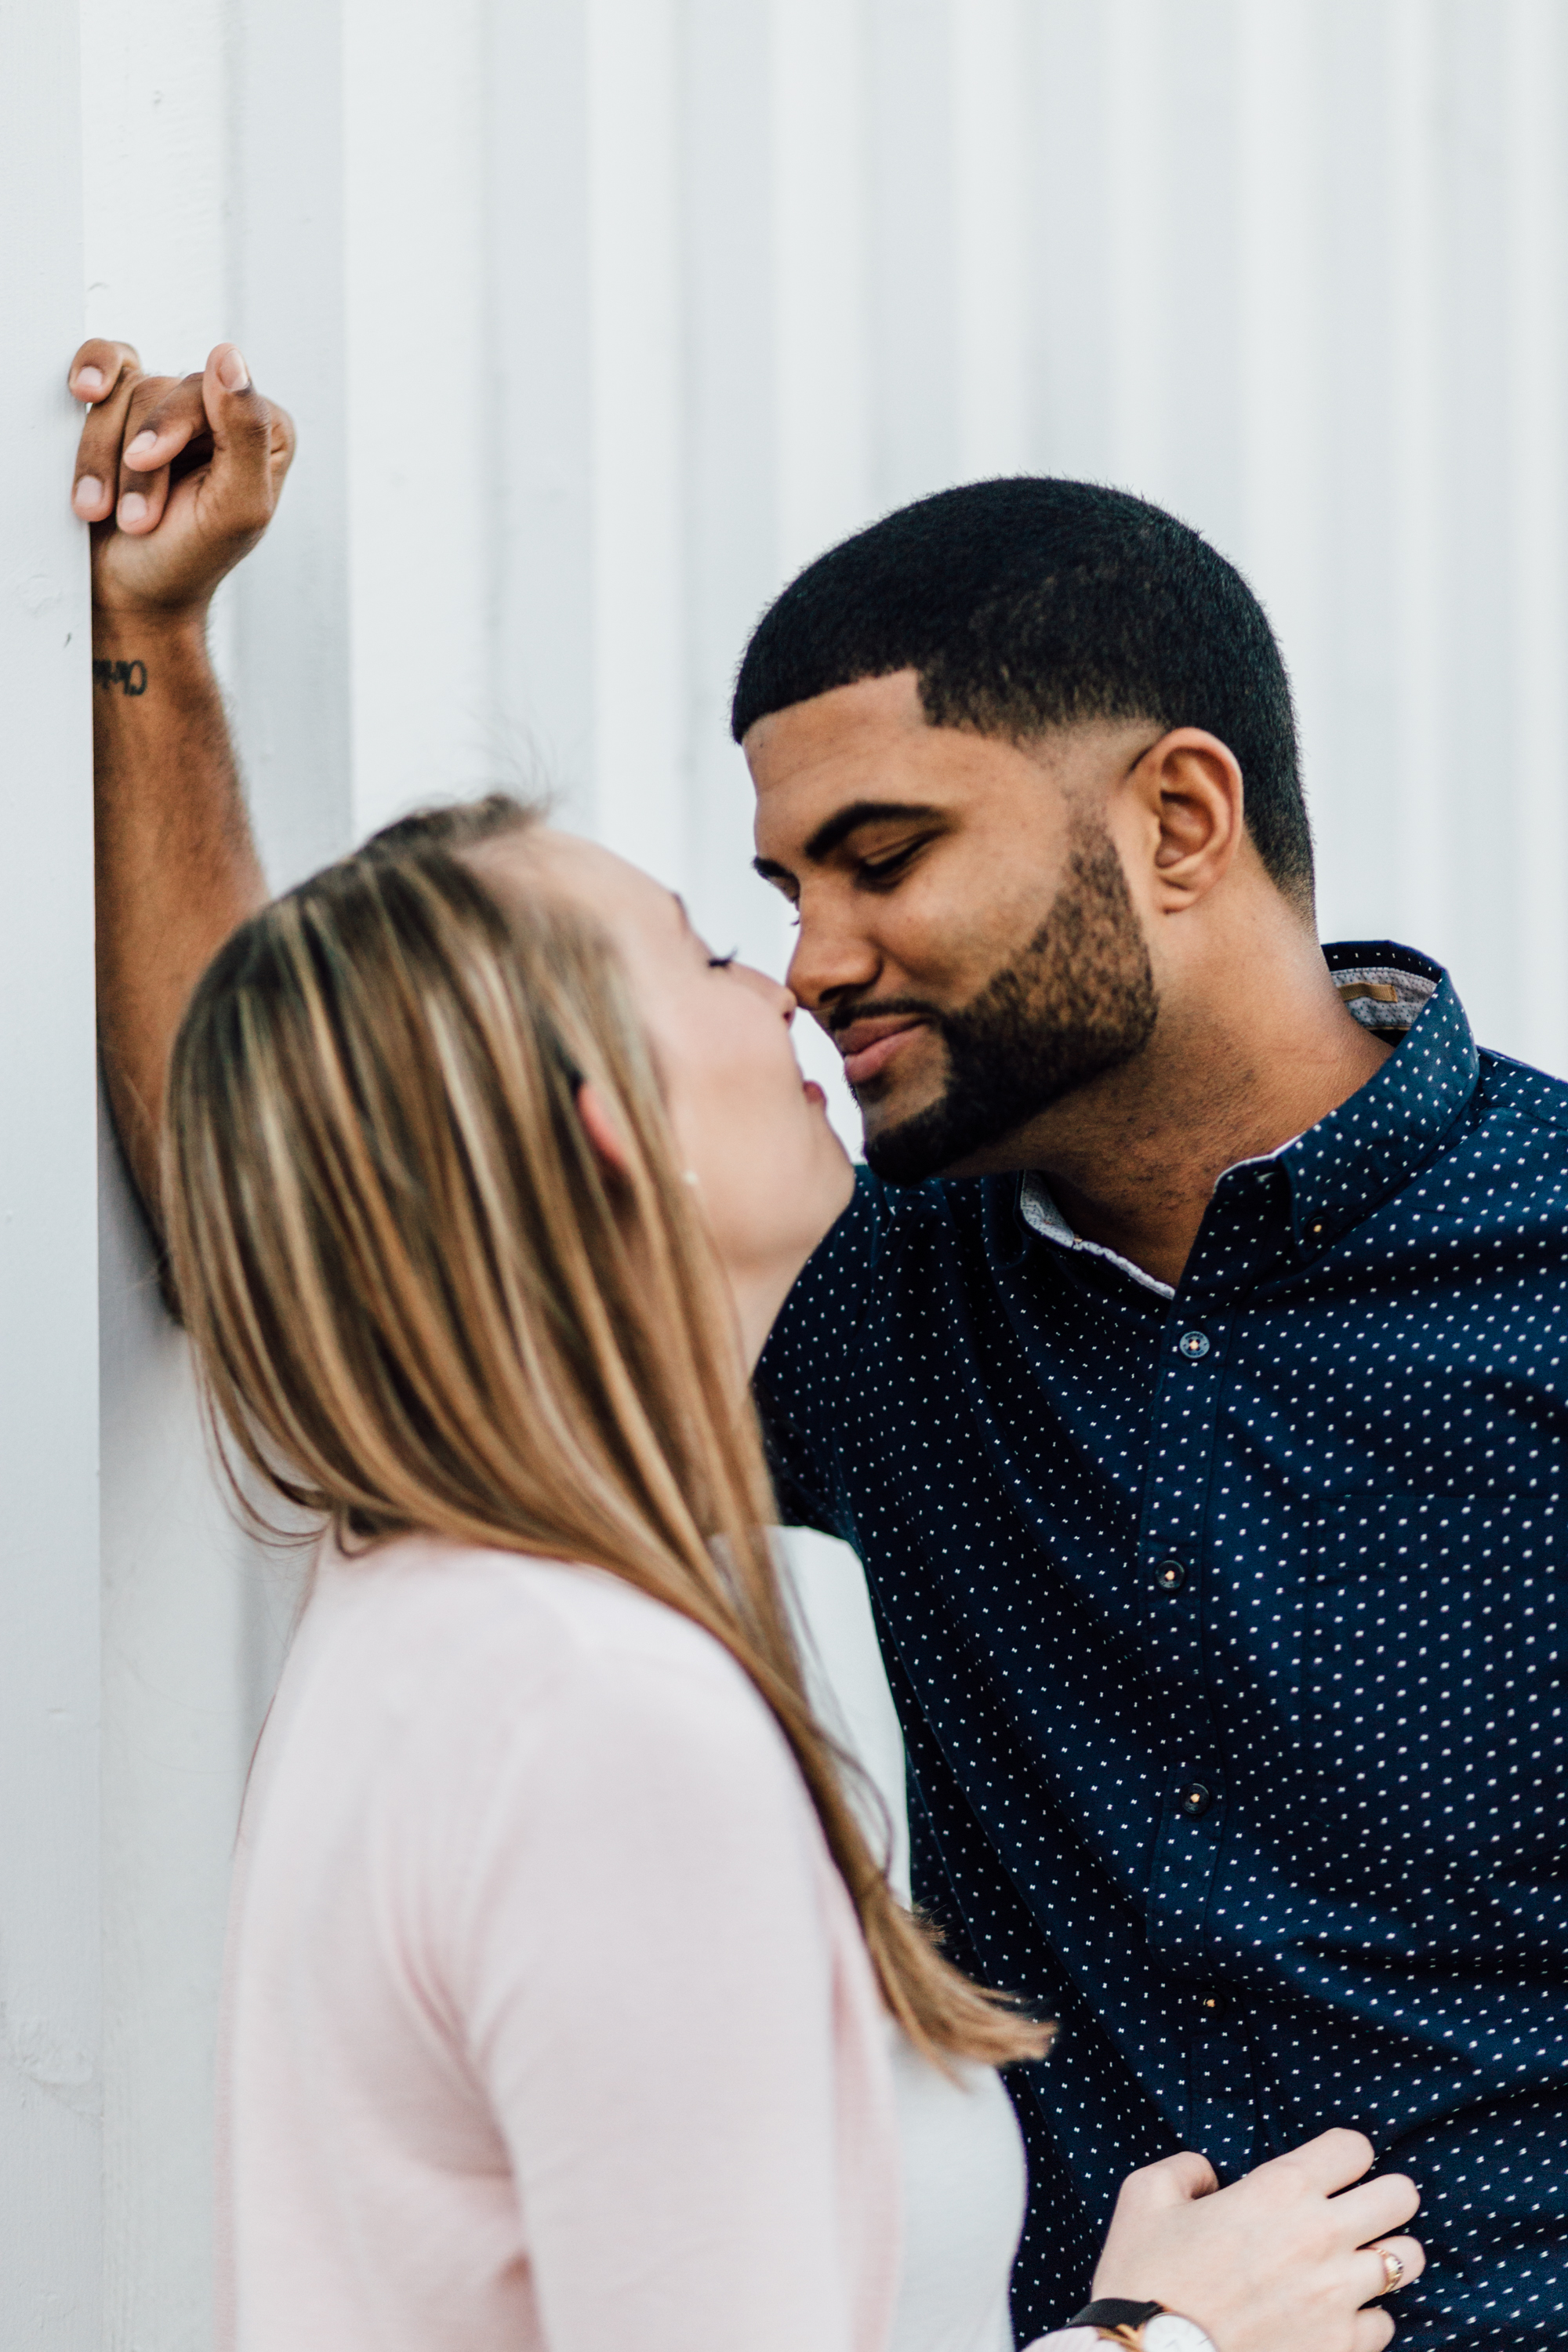 Olivia and Steven Final Edits Downtown Titusville FL Engagement Session-93.jpg